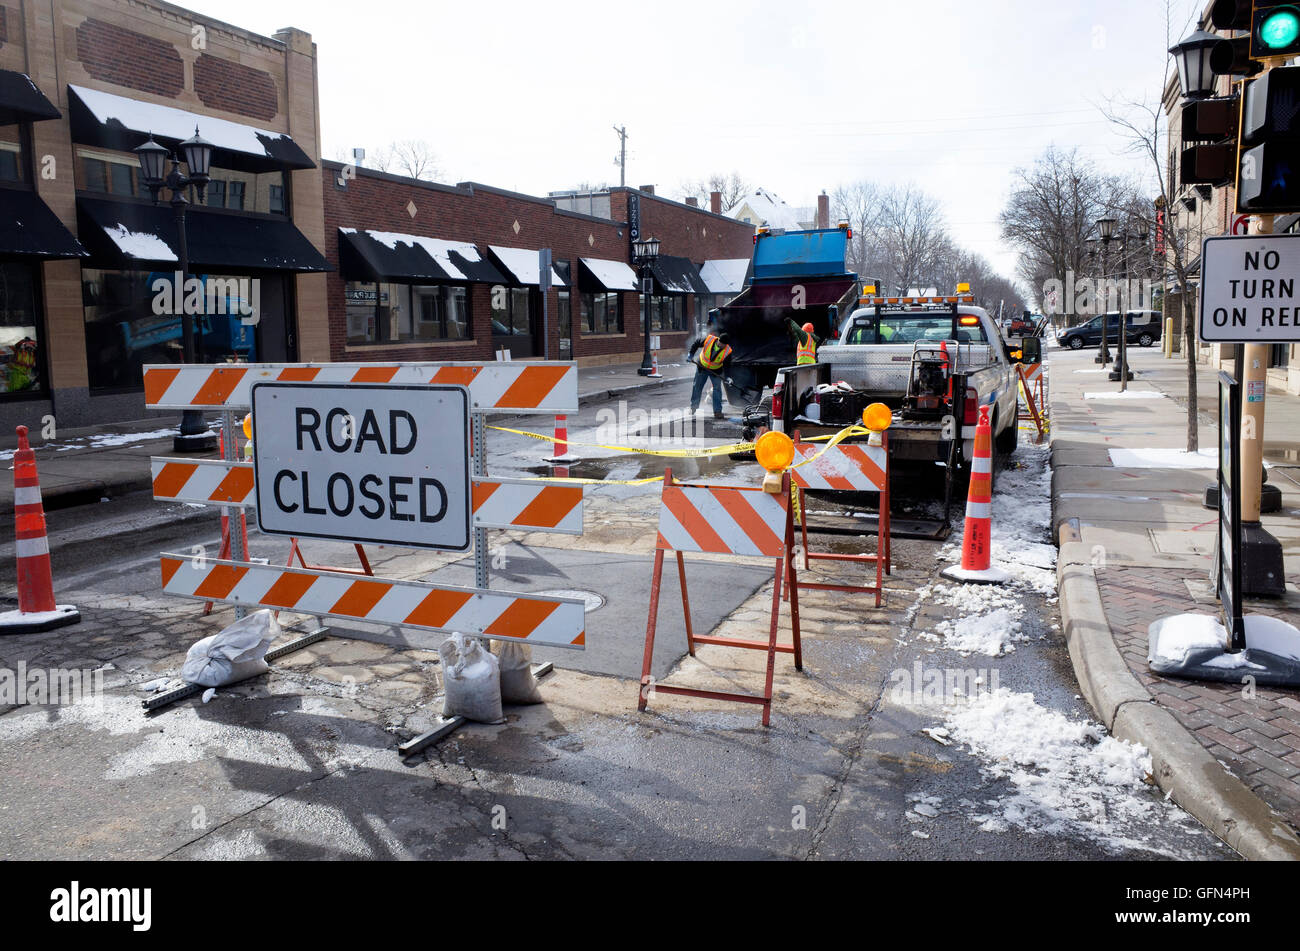 Road closed sign and striped barriers to protect workers while they fill potholes from winter damage. St Paul Minnesota - Stock Image